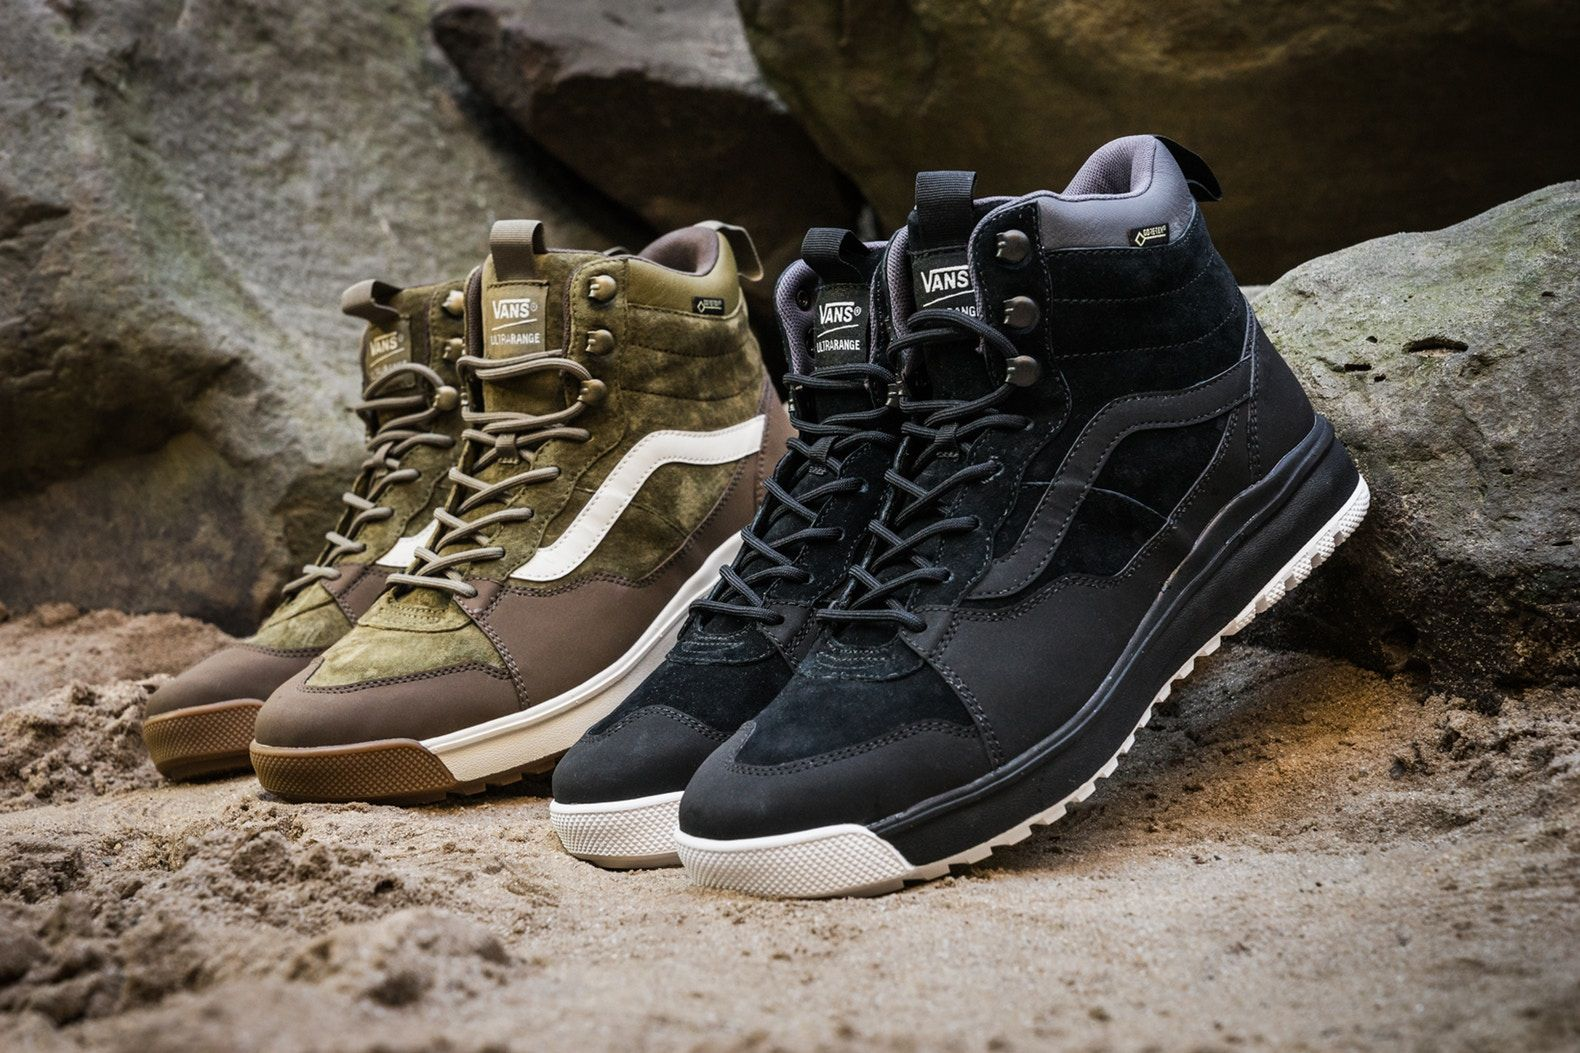 Vans Introduces The New UltraRange Hi MTE For Winter